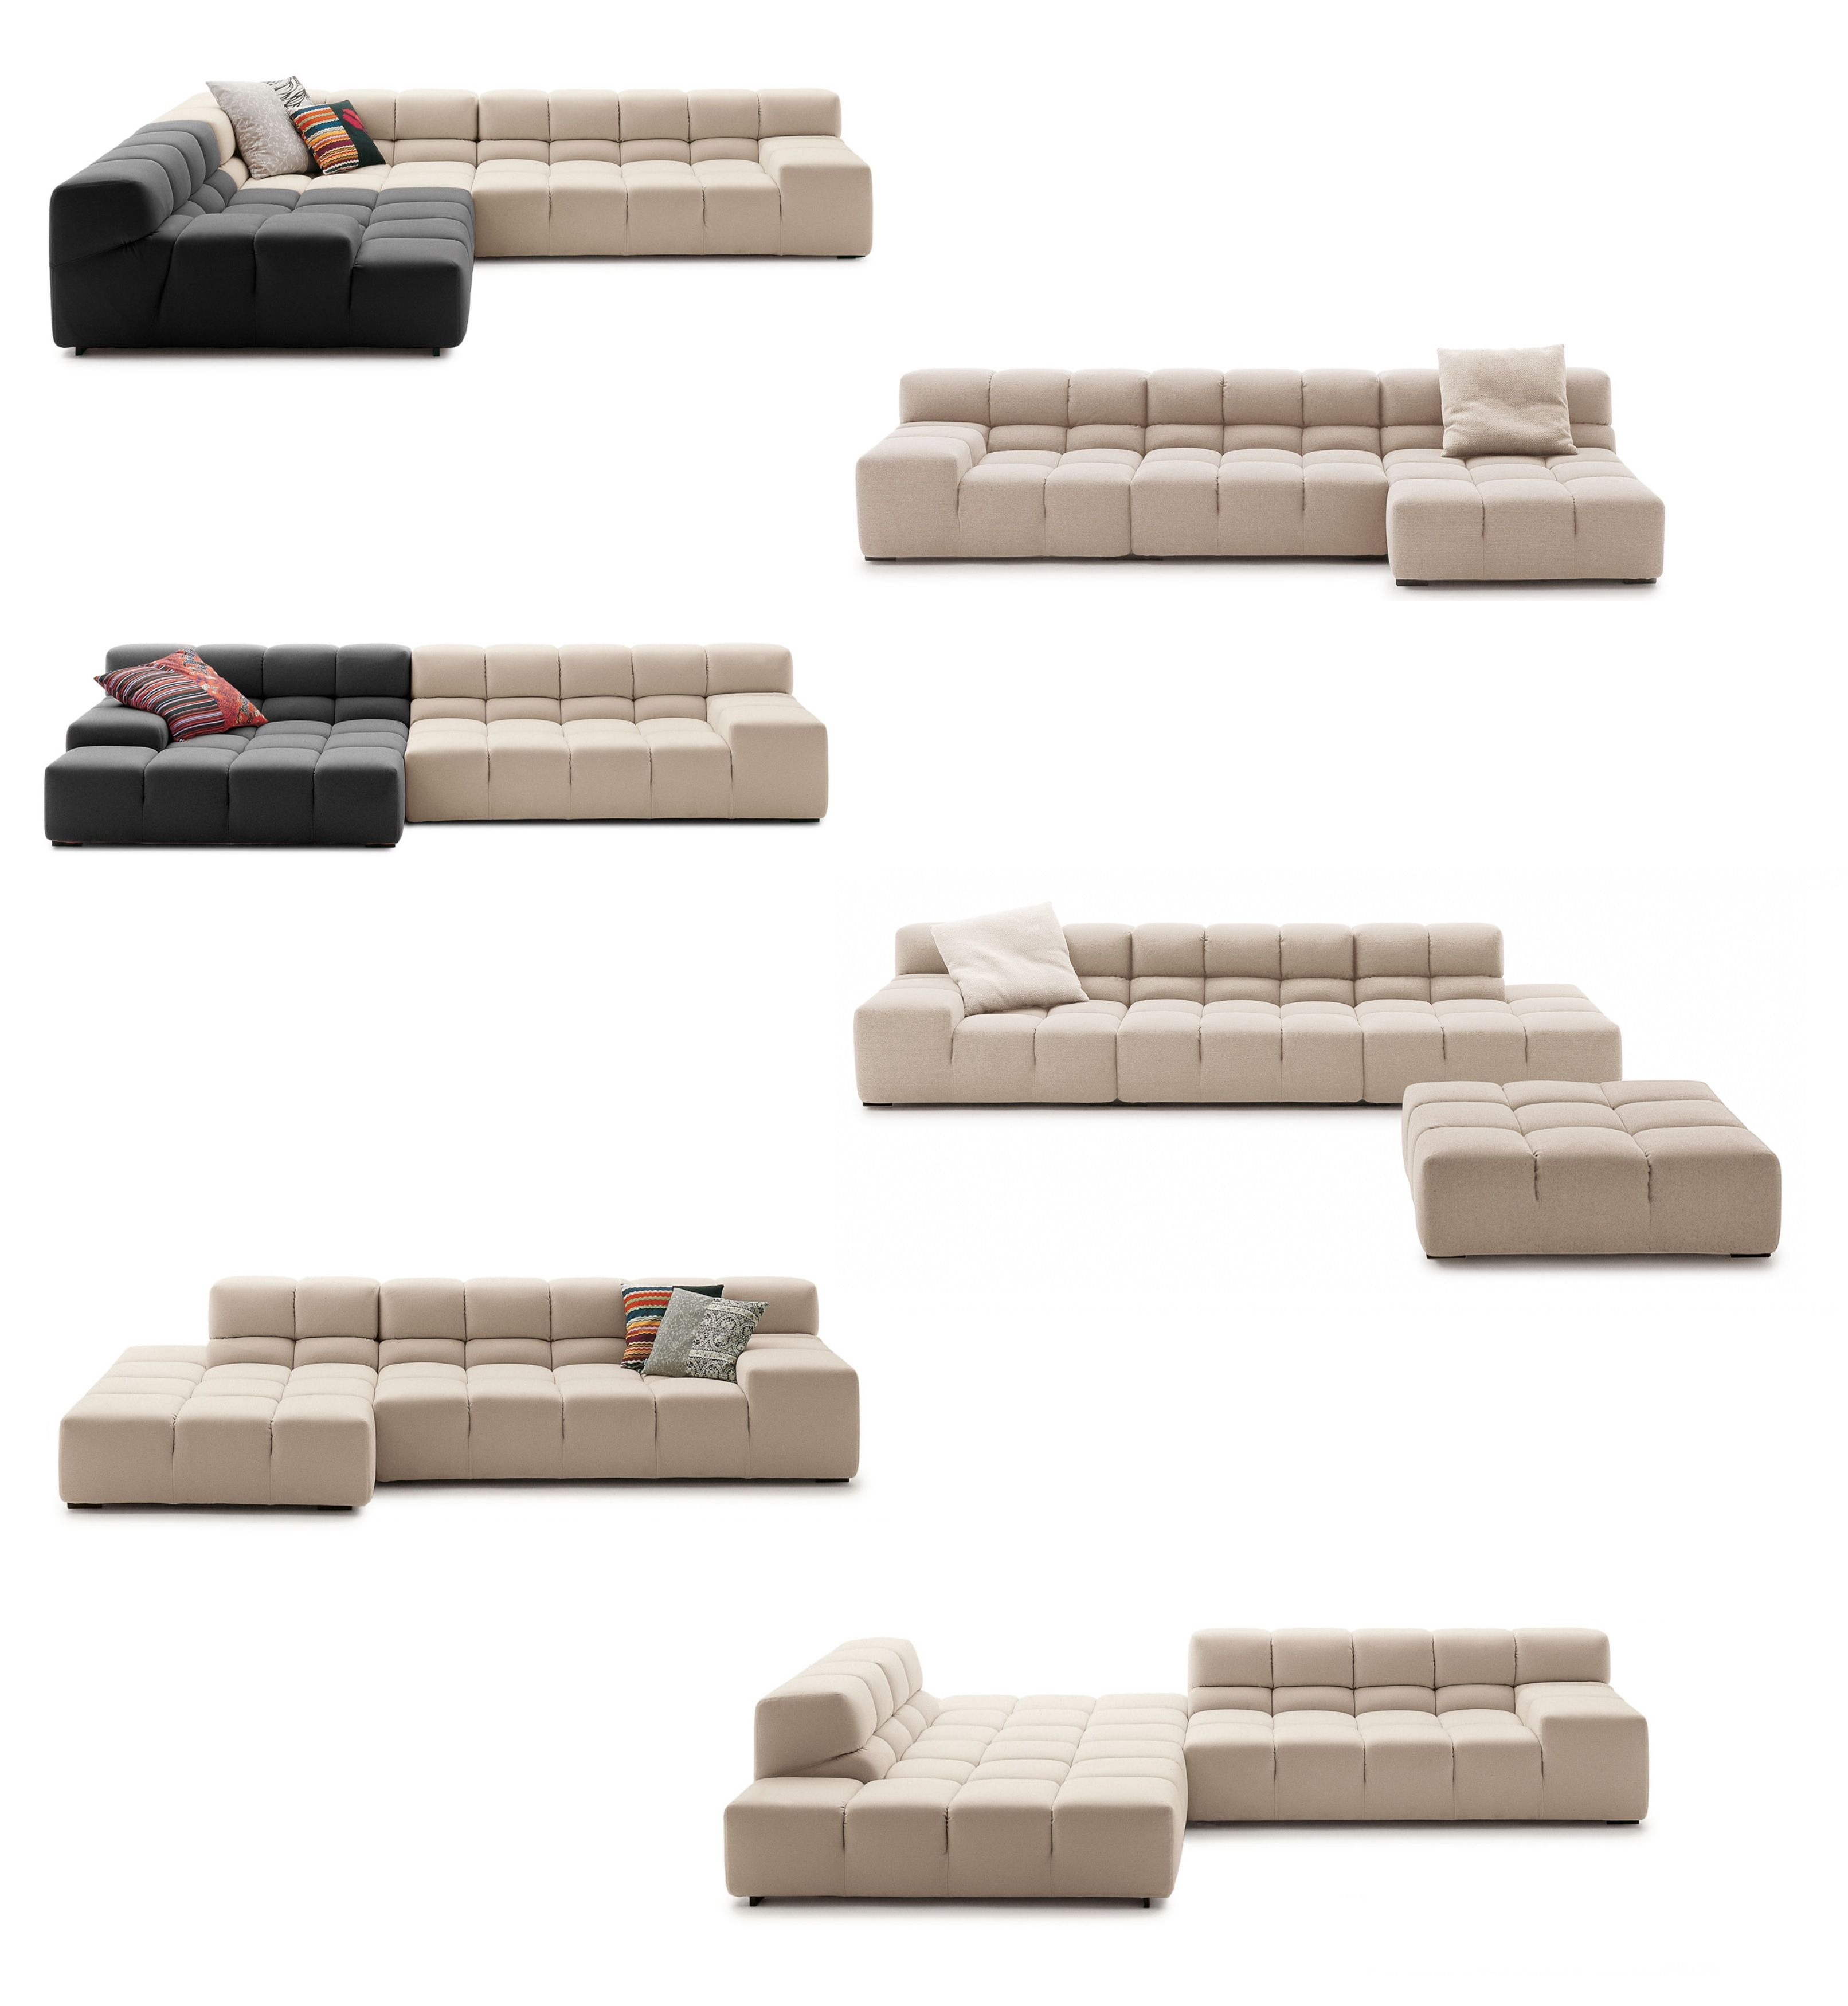 TUFTY-TIME Collection. System modular sofa (compositions). B&B ...